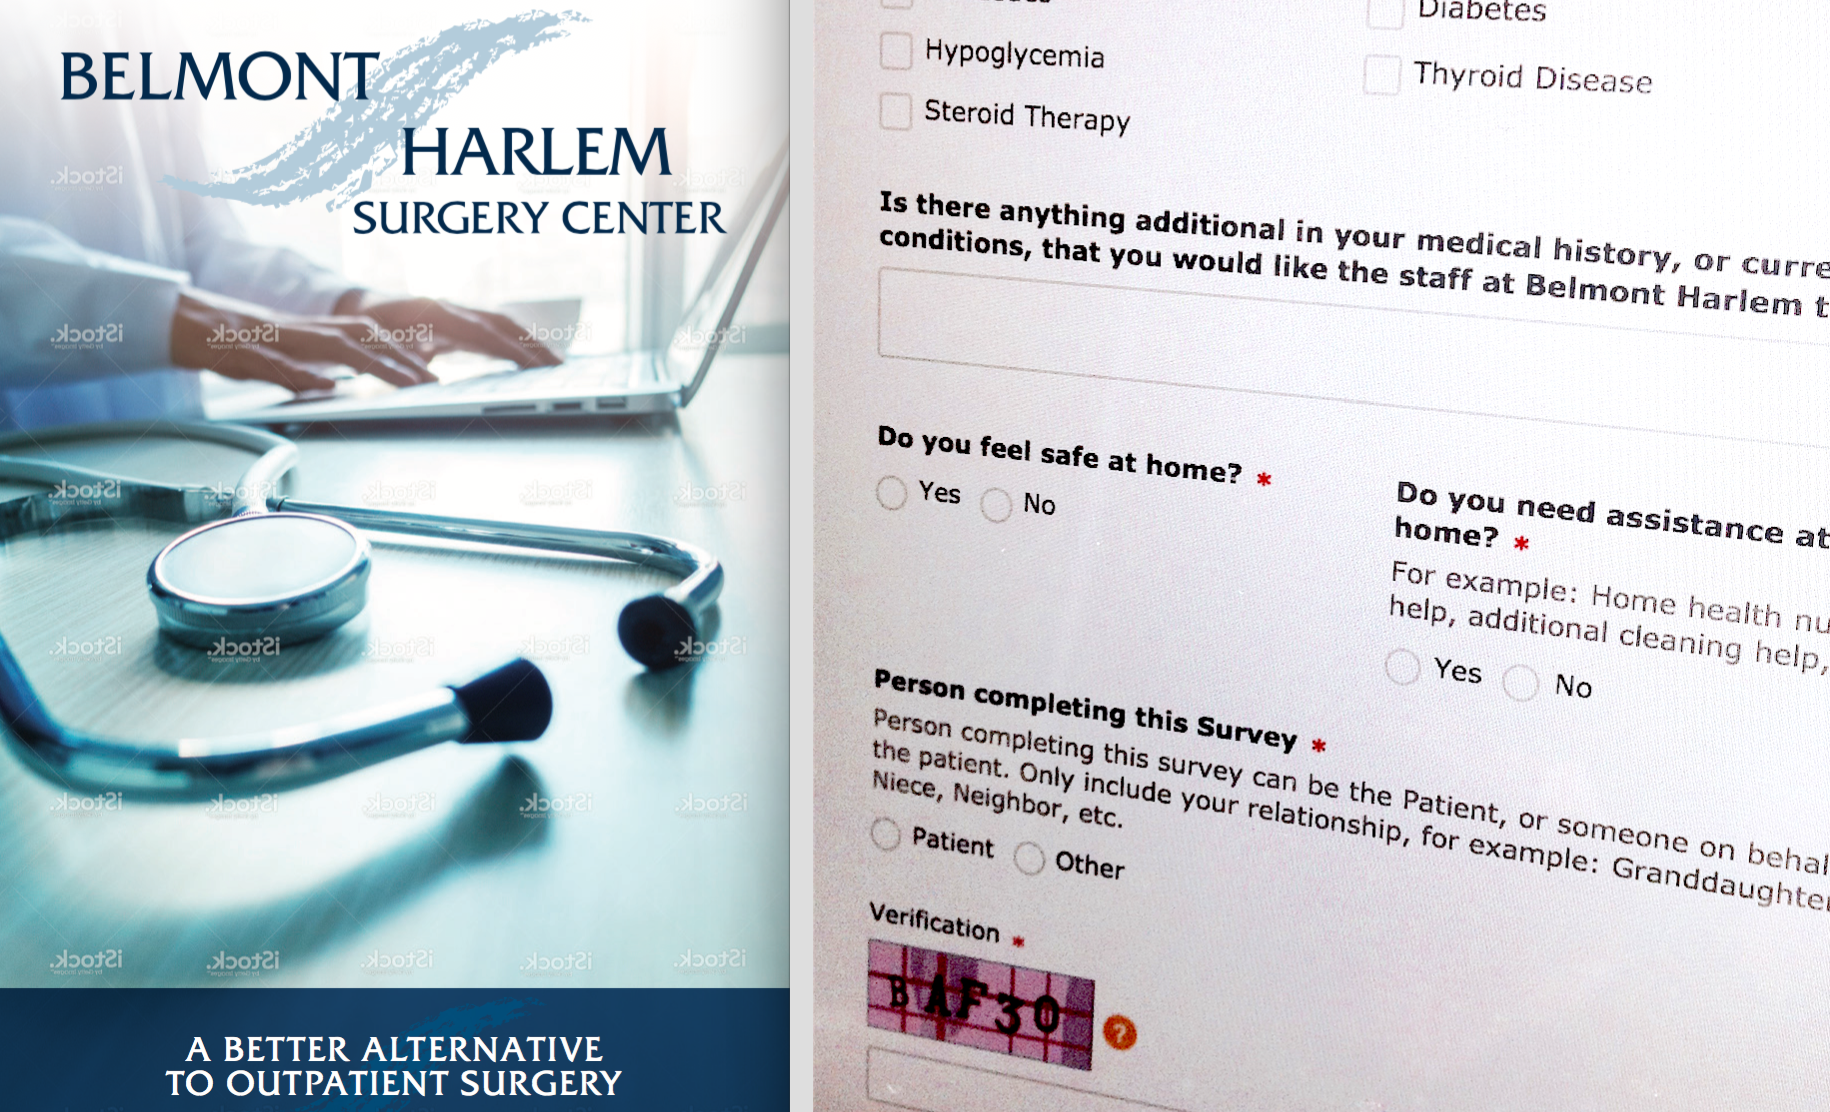 We streamlined the business office procedures and process. - Developed an online medical history patient survey, F.A.Q. and the patient appointment postcard.